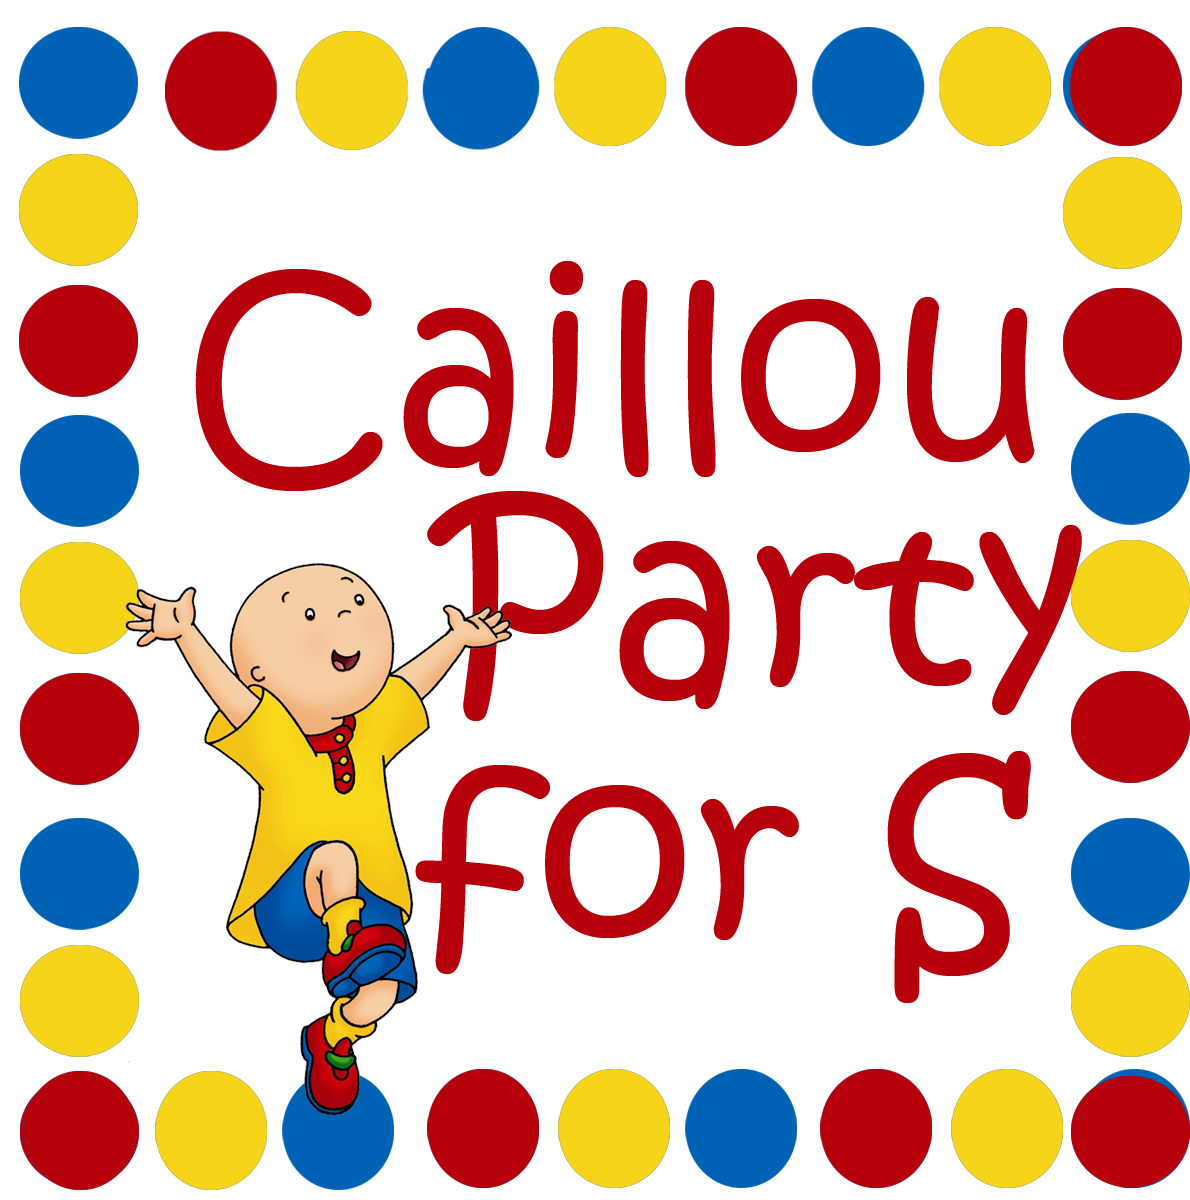 Entirely Emily: Caillou Party for S